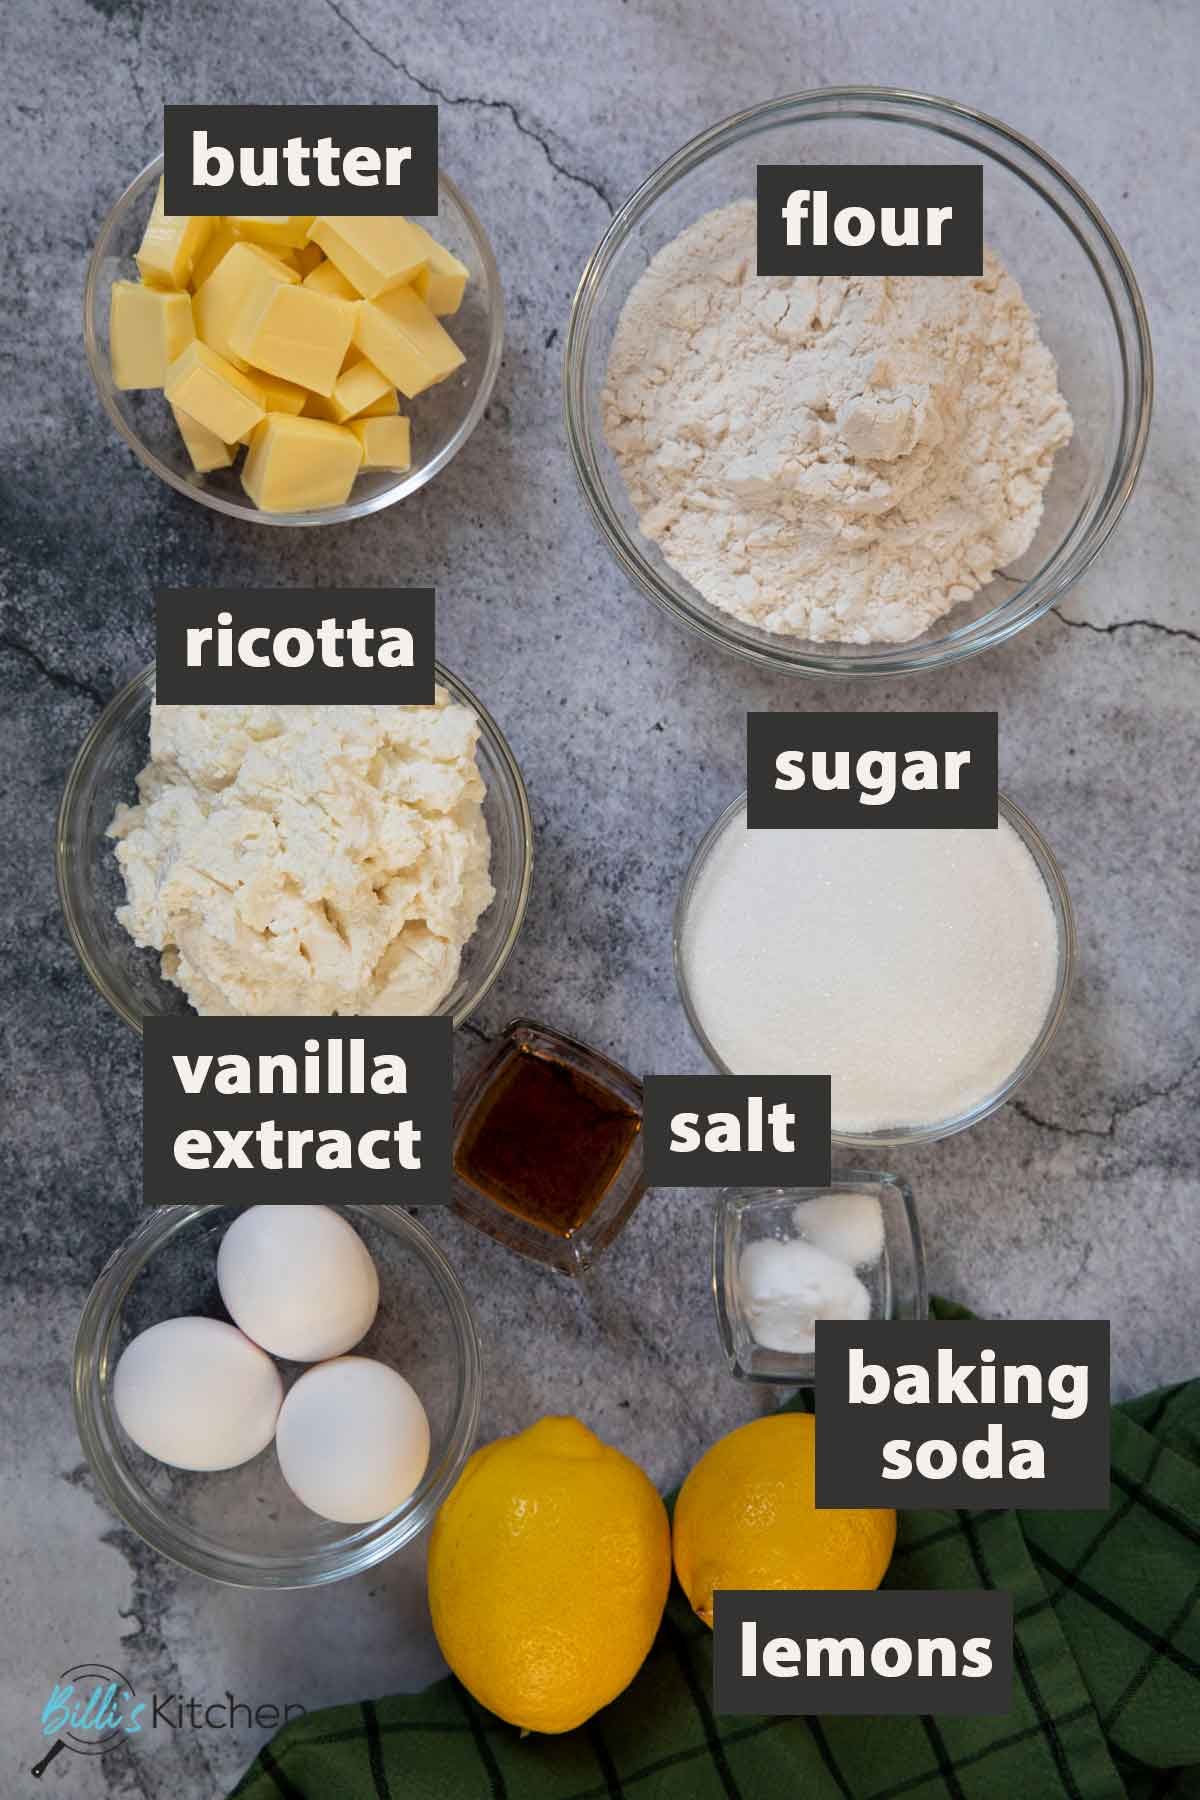 An image showing all the ingredients you need to prepare easy lemon ricotta cake.